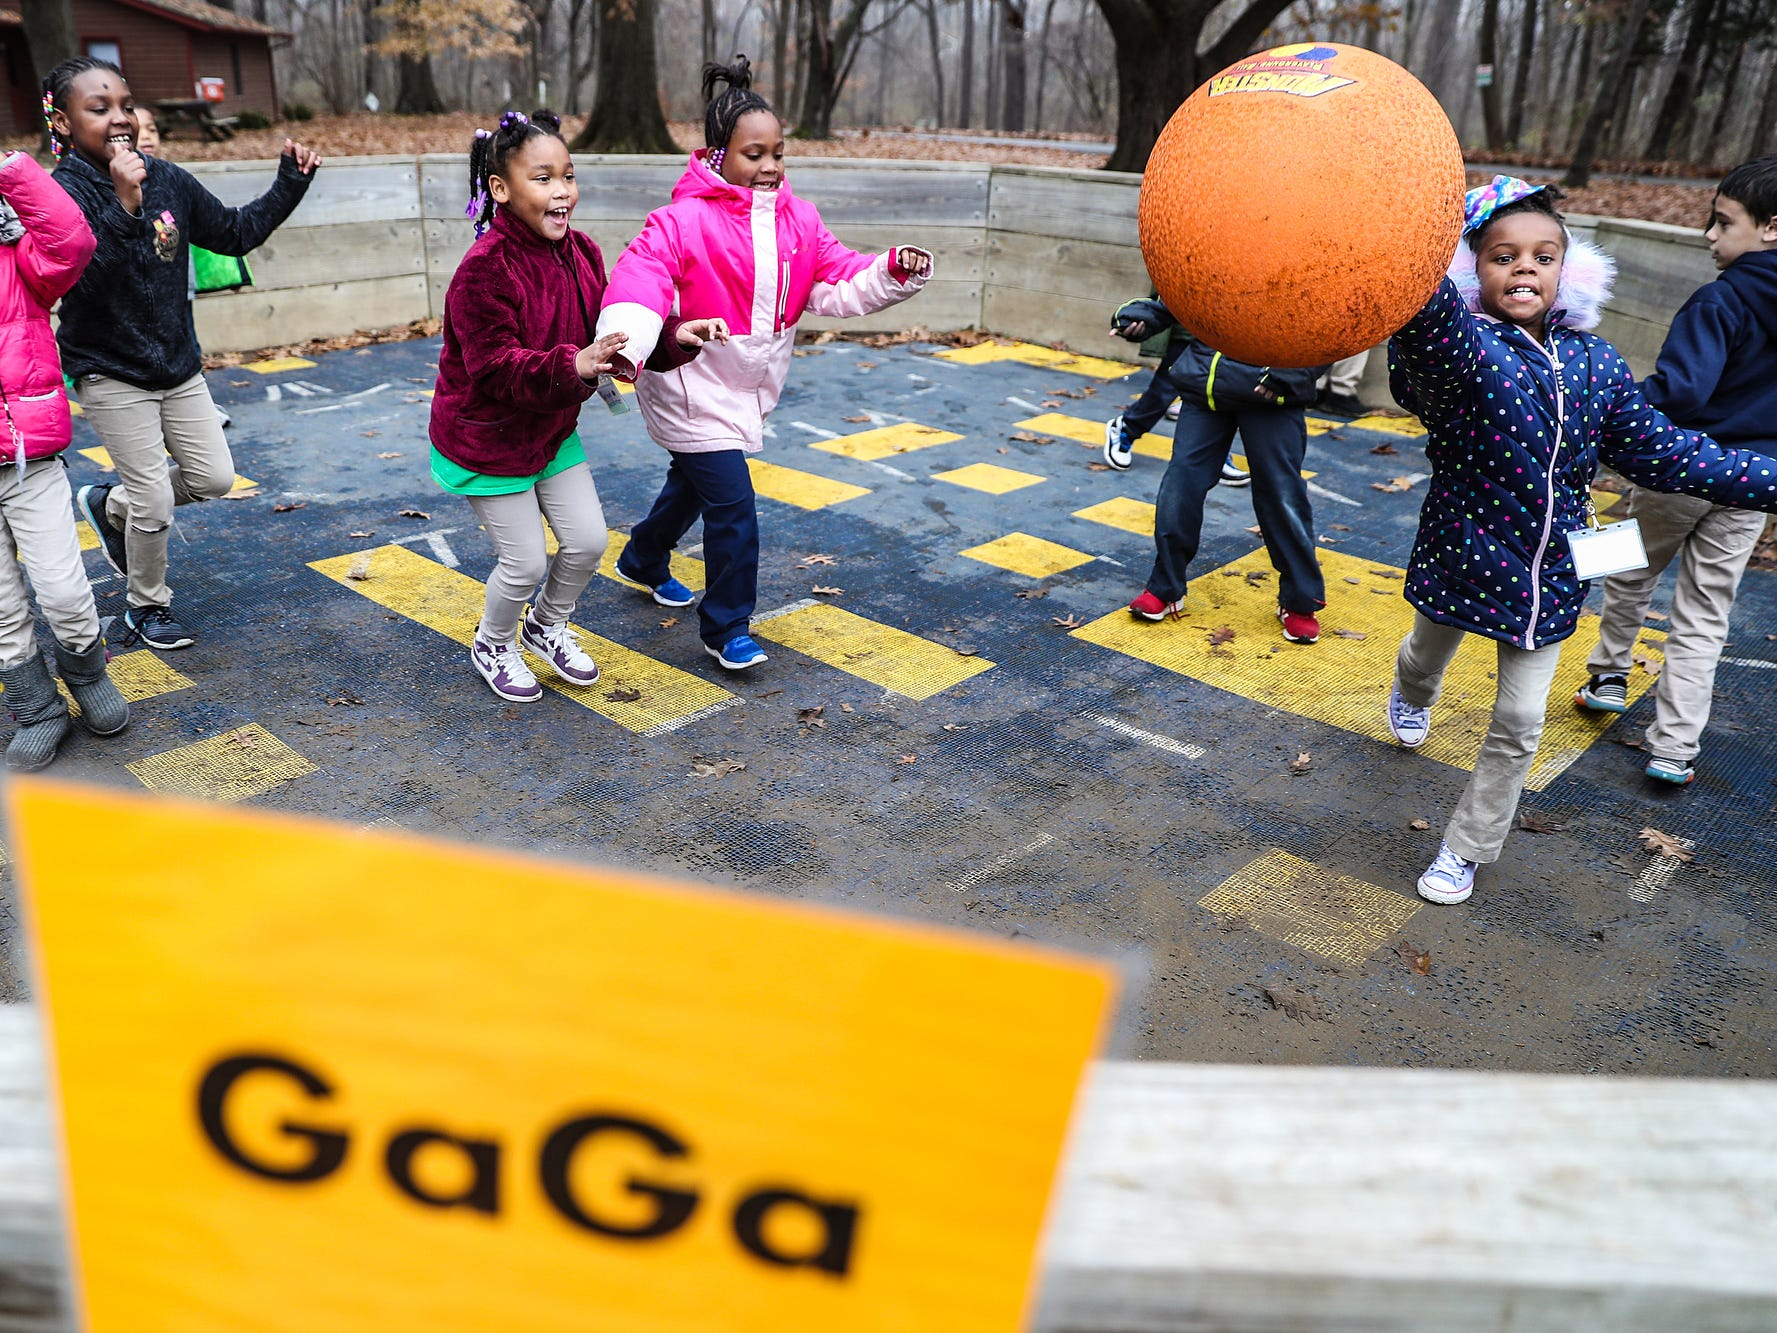 Second graders from Global Preparatory Academy play a game of Gaga at Jameson Camp in Indianapolis, Friday, Nov. 30, 2018.